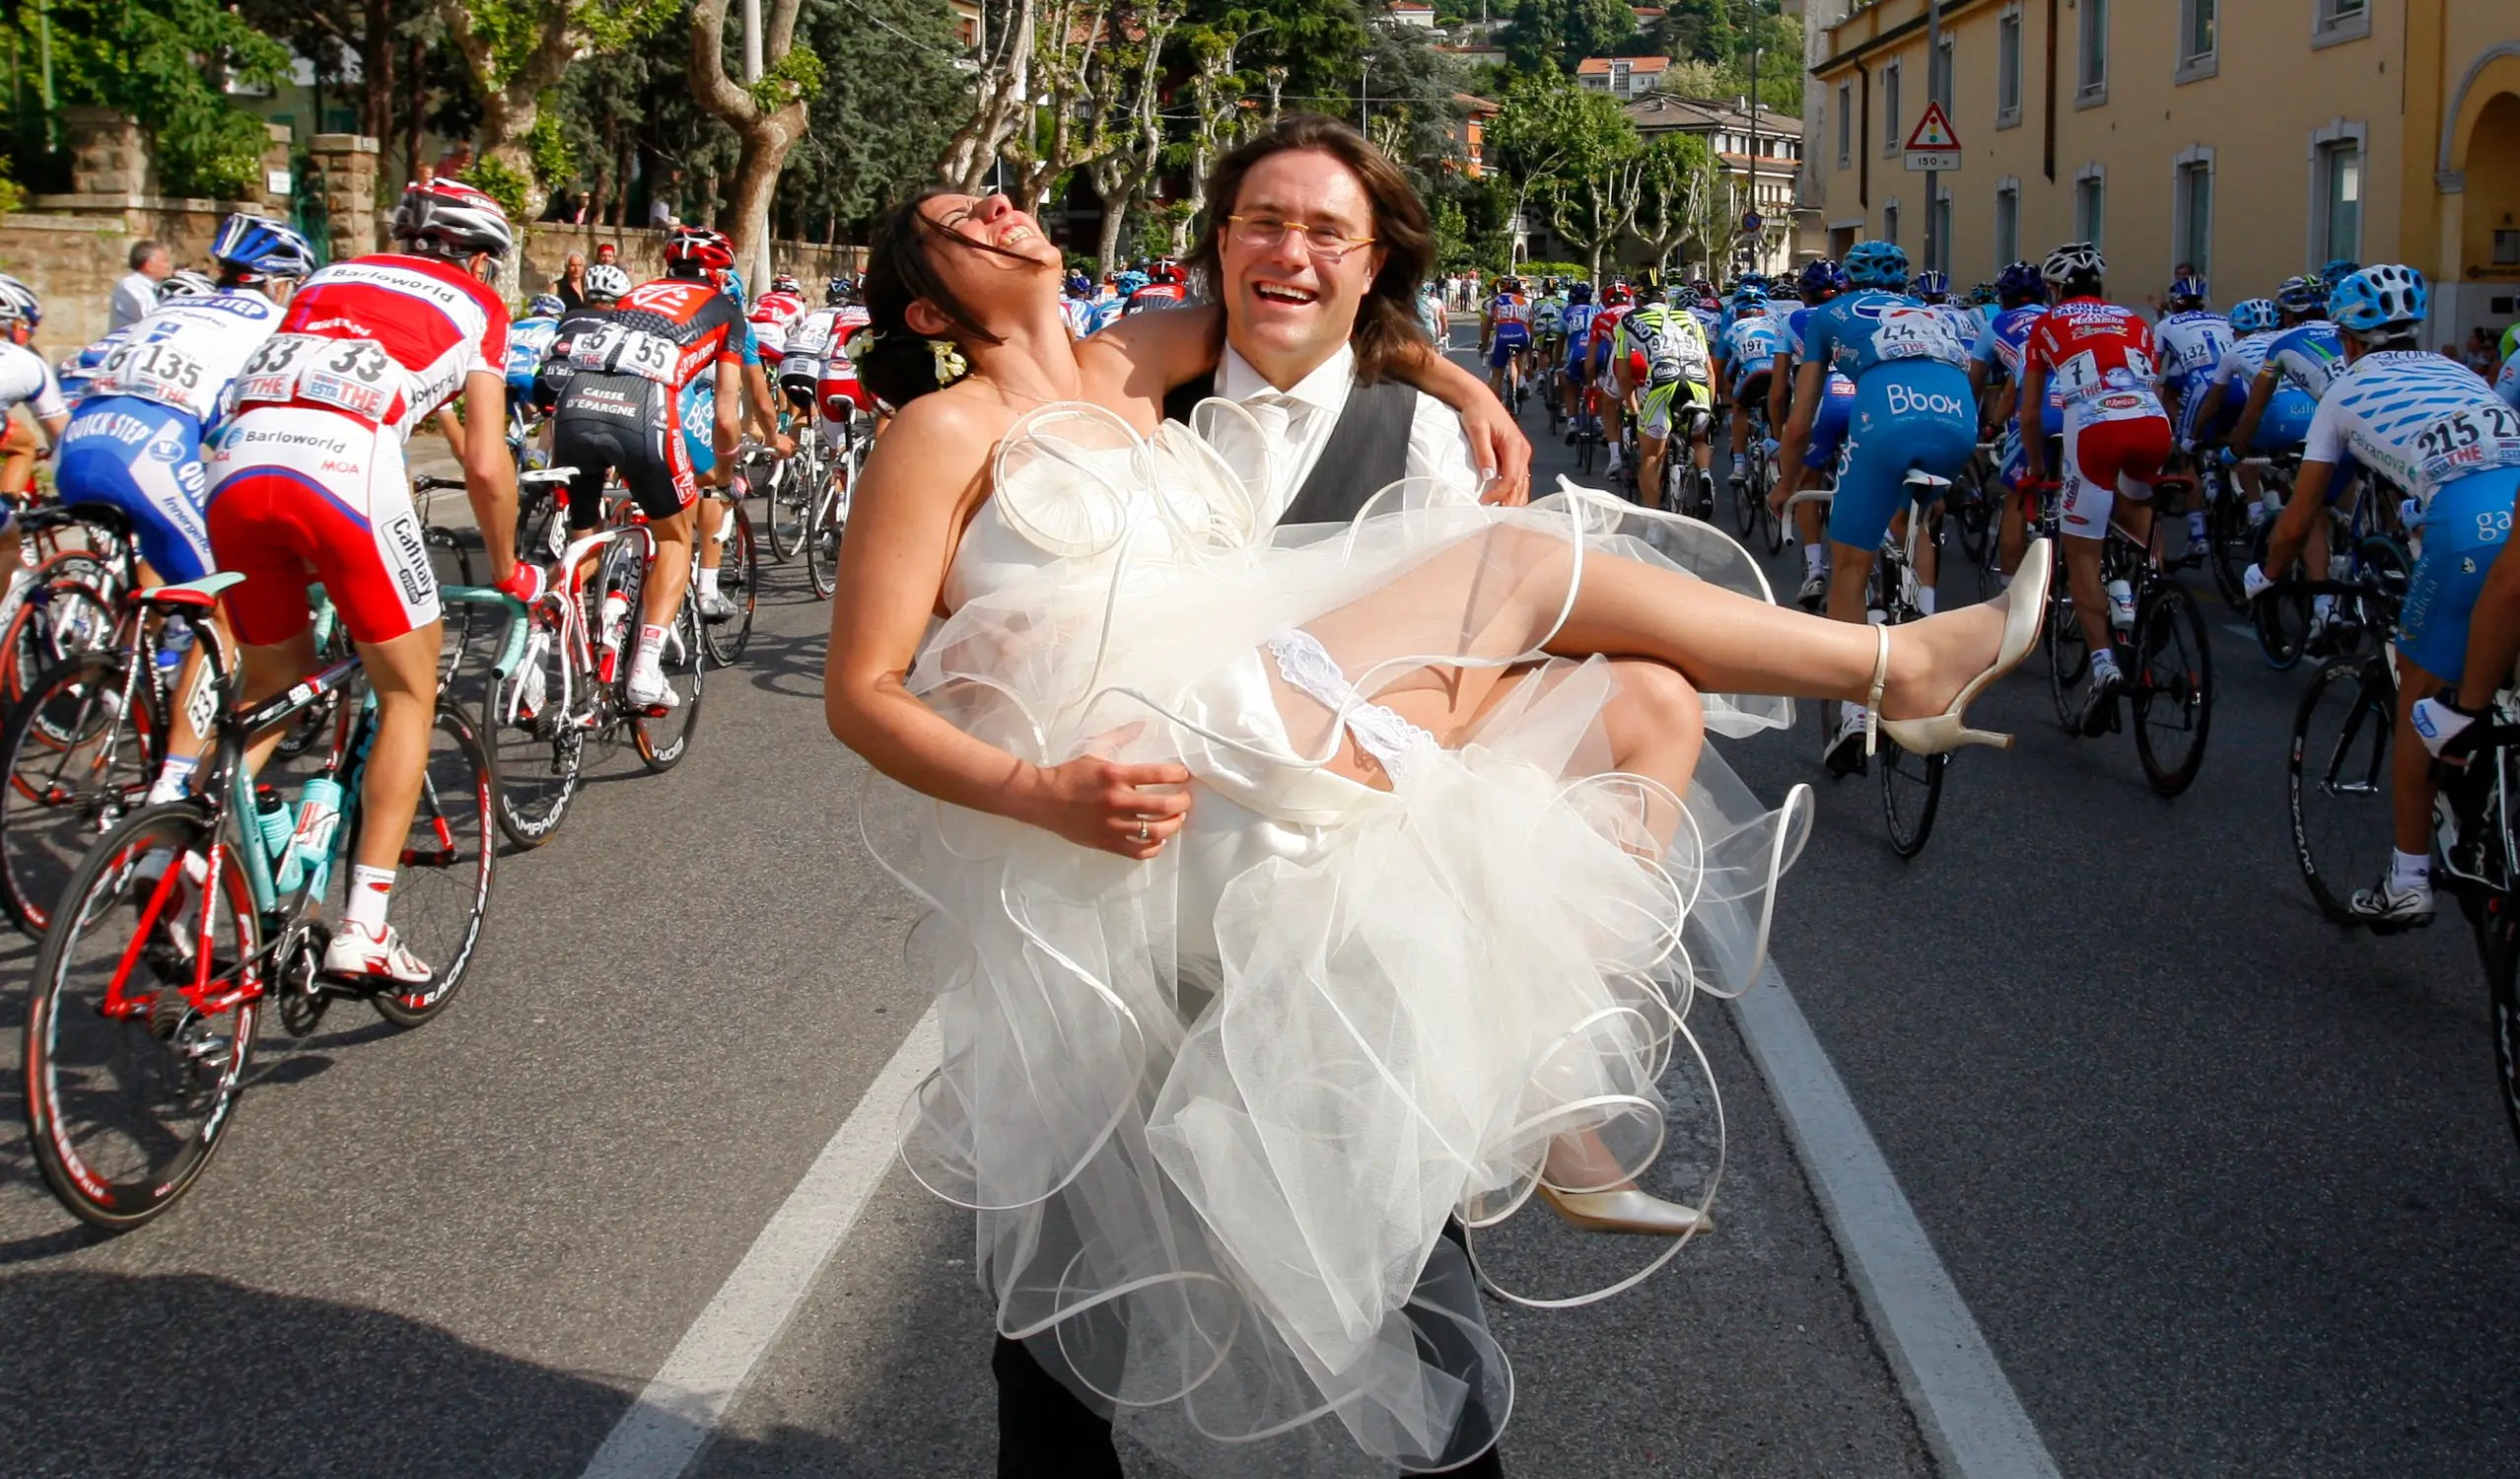 Cyclists ride past these newlyweds during the second stage of the Giro d'Italia in Italy.